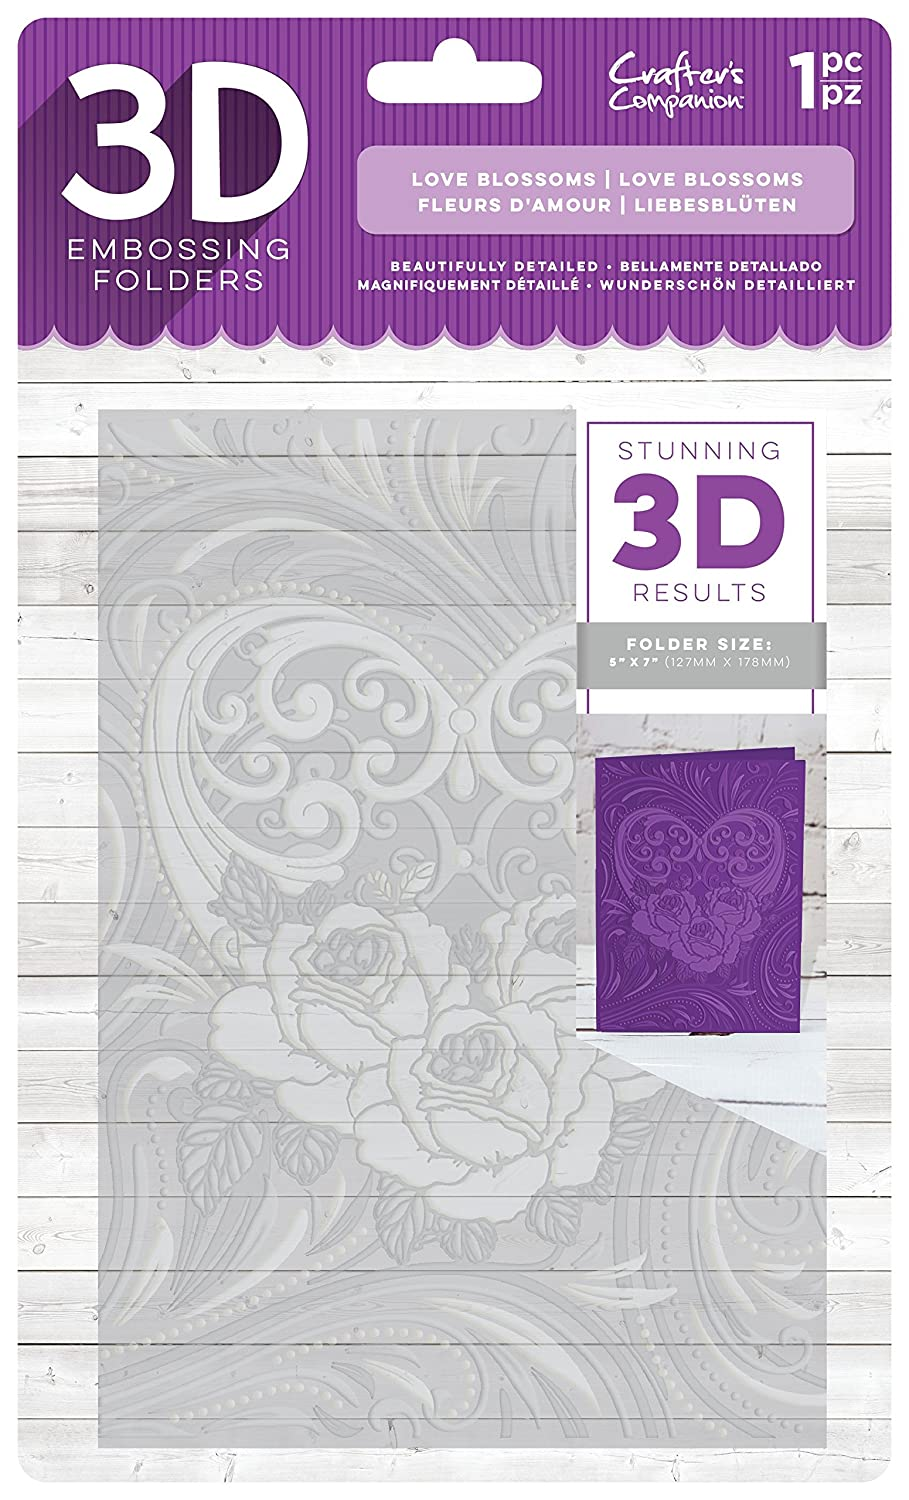 Crafter' s Companion 3D embossing folder-love Blossoms, 12,7 x 17,8 cm Crafter' s Companion EF5-3D-LBLO